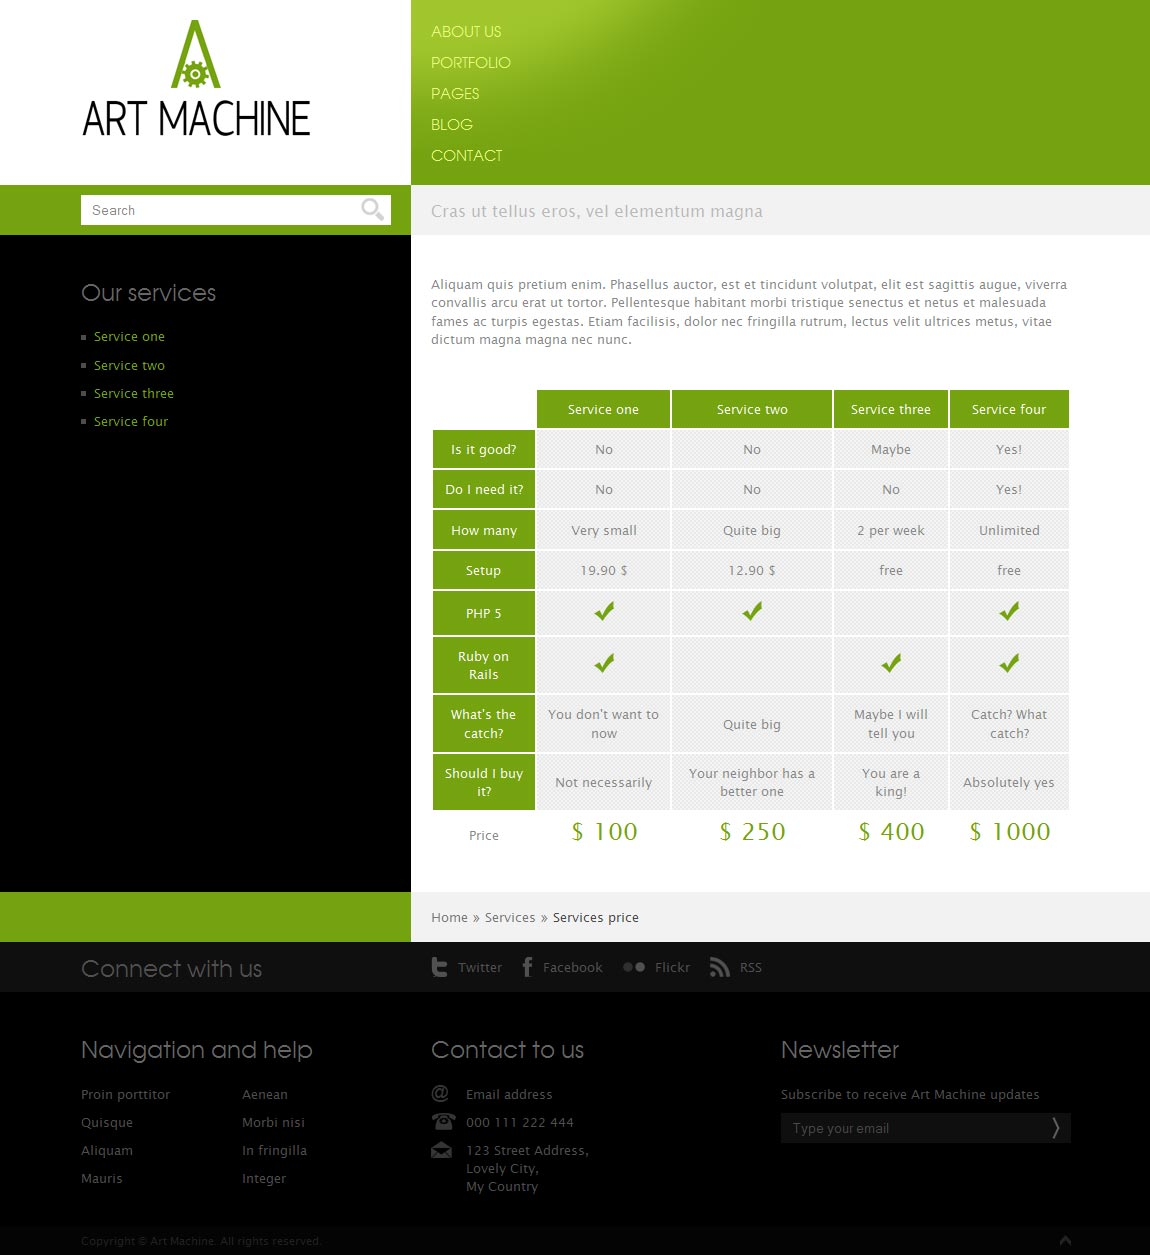 Art Machine HTML Template - Price table.